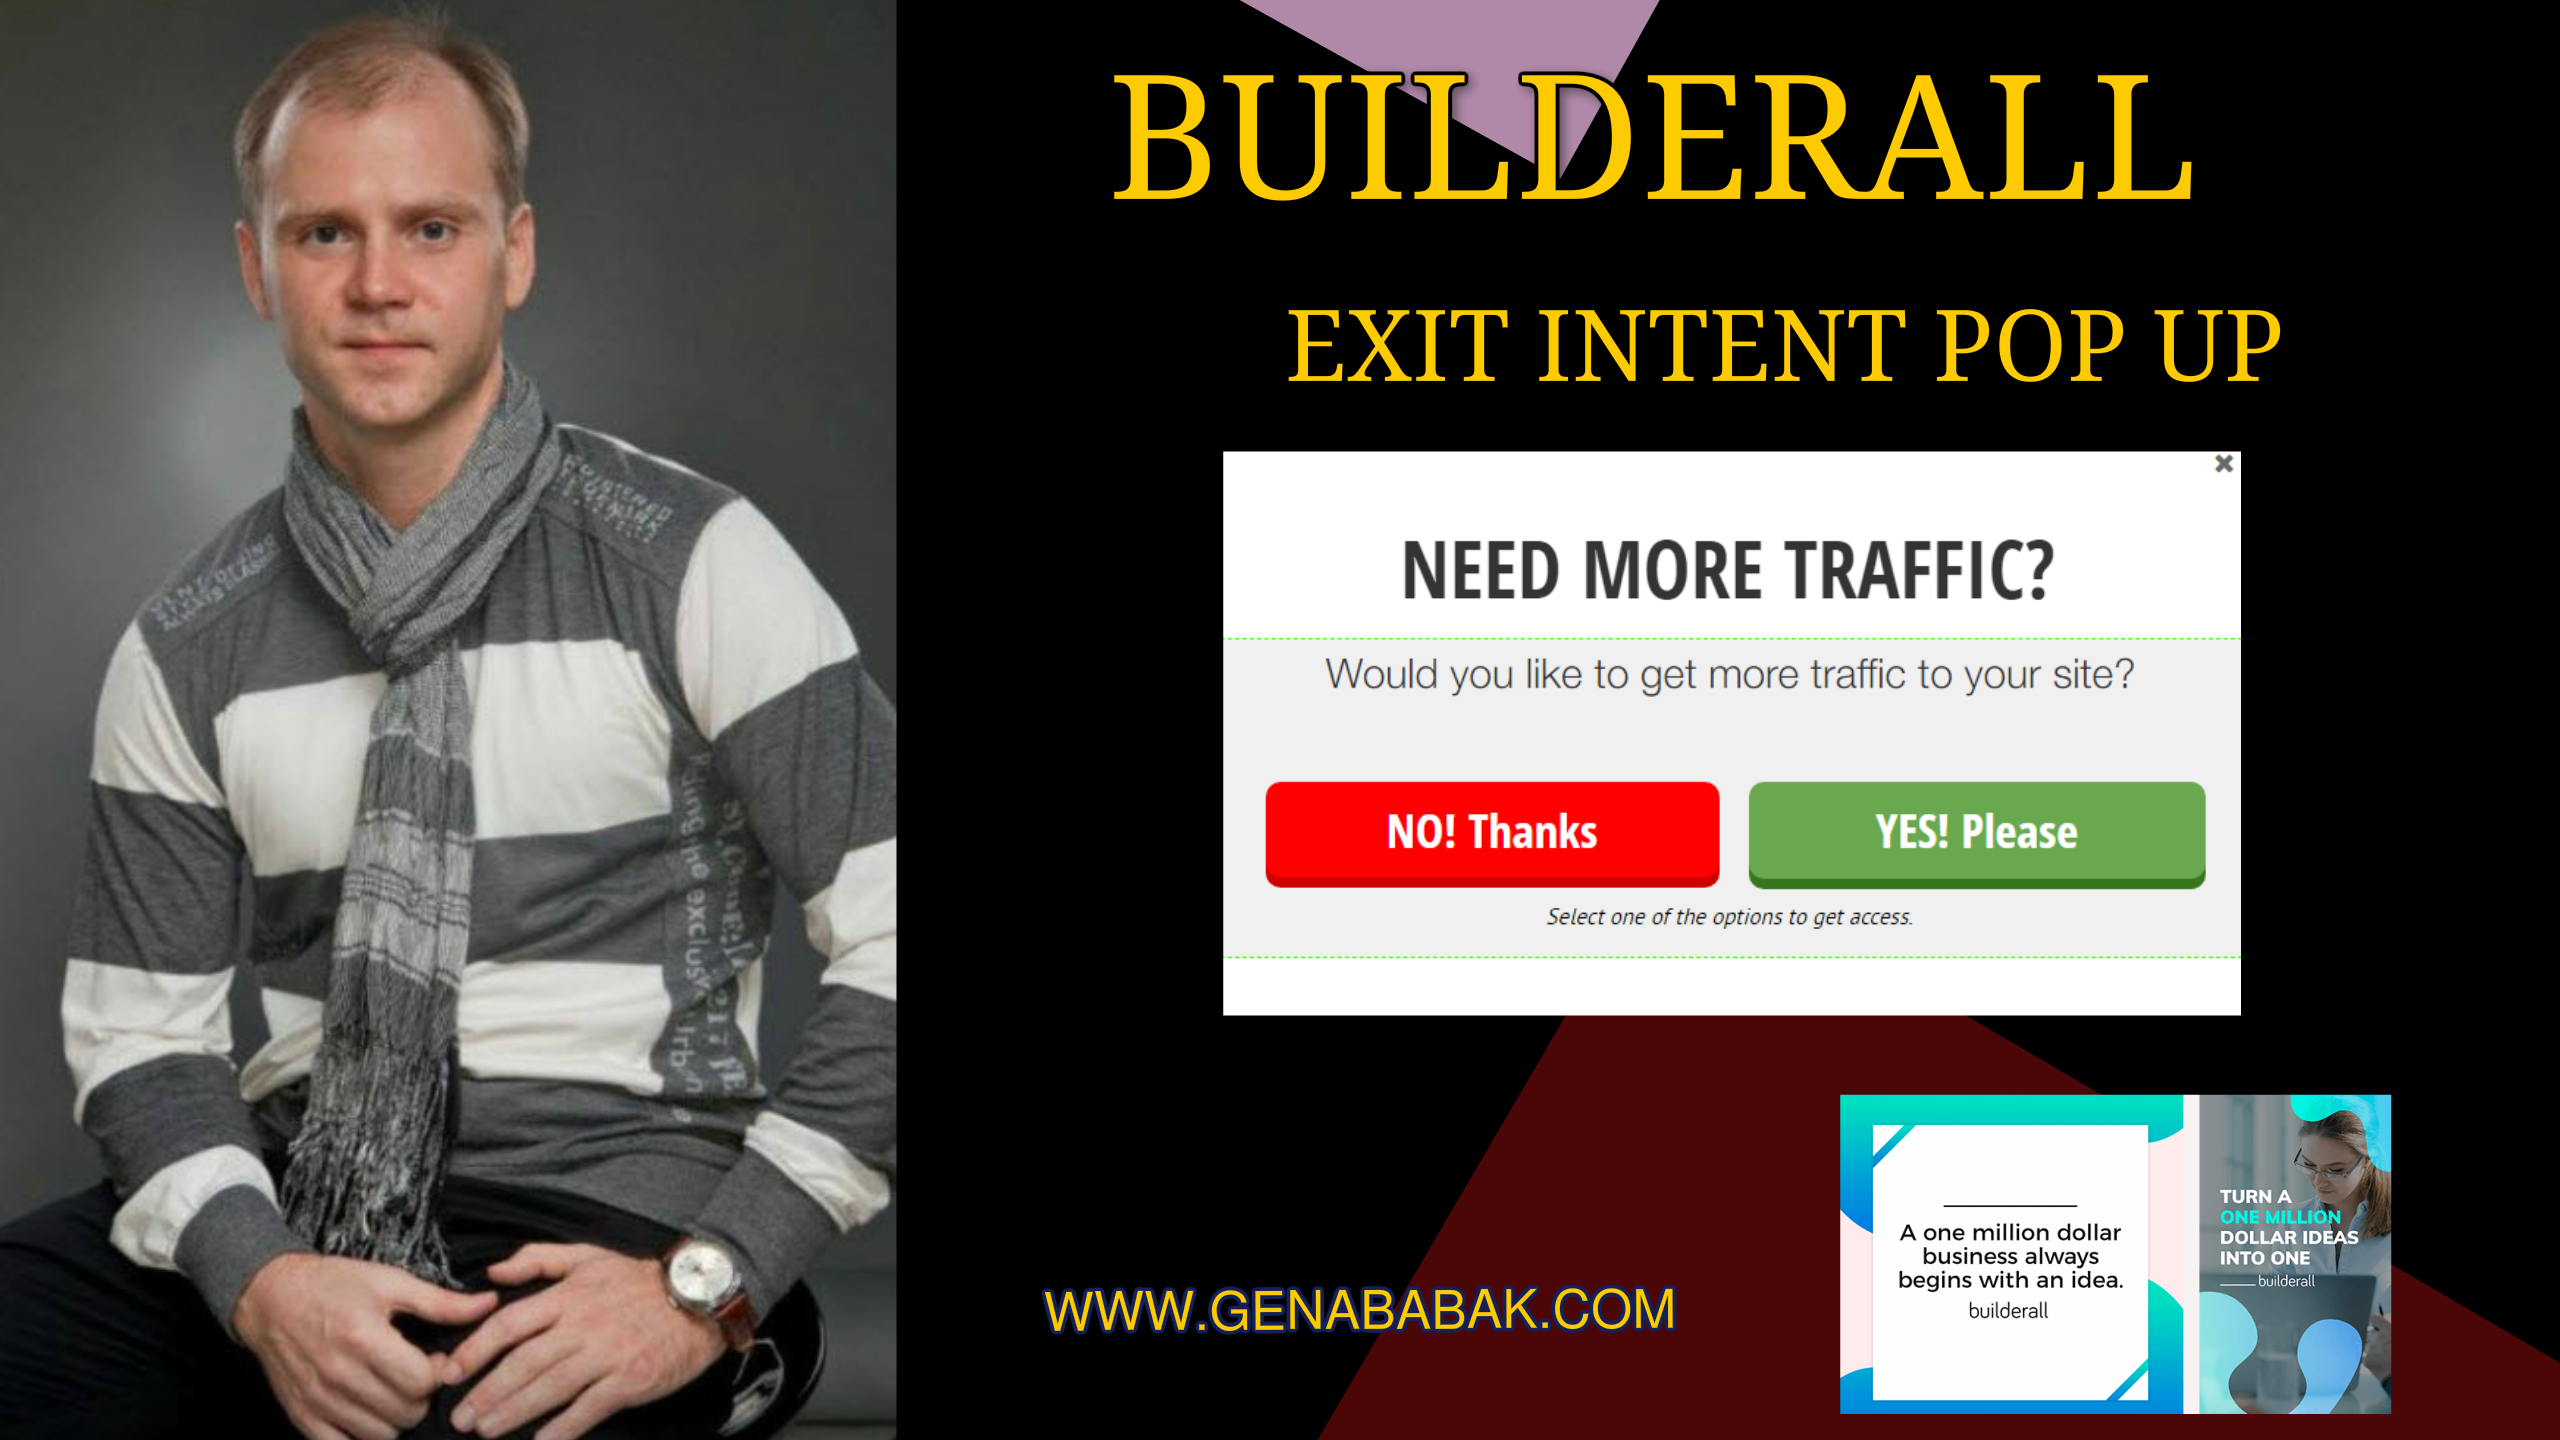 BUILDERALL HOW TO CREATE EXIT INTENT POP UP